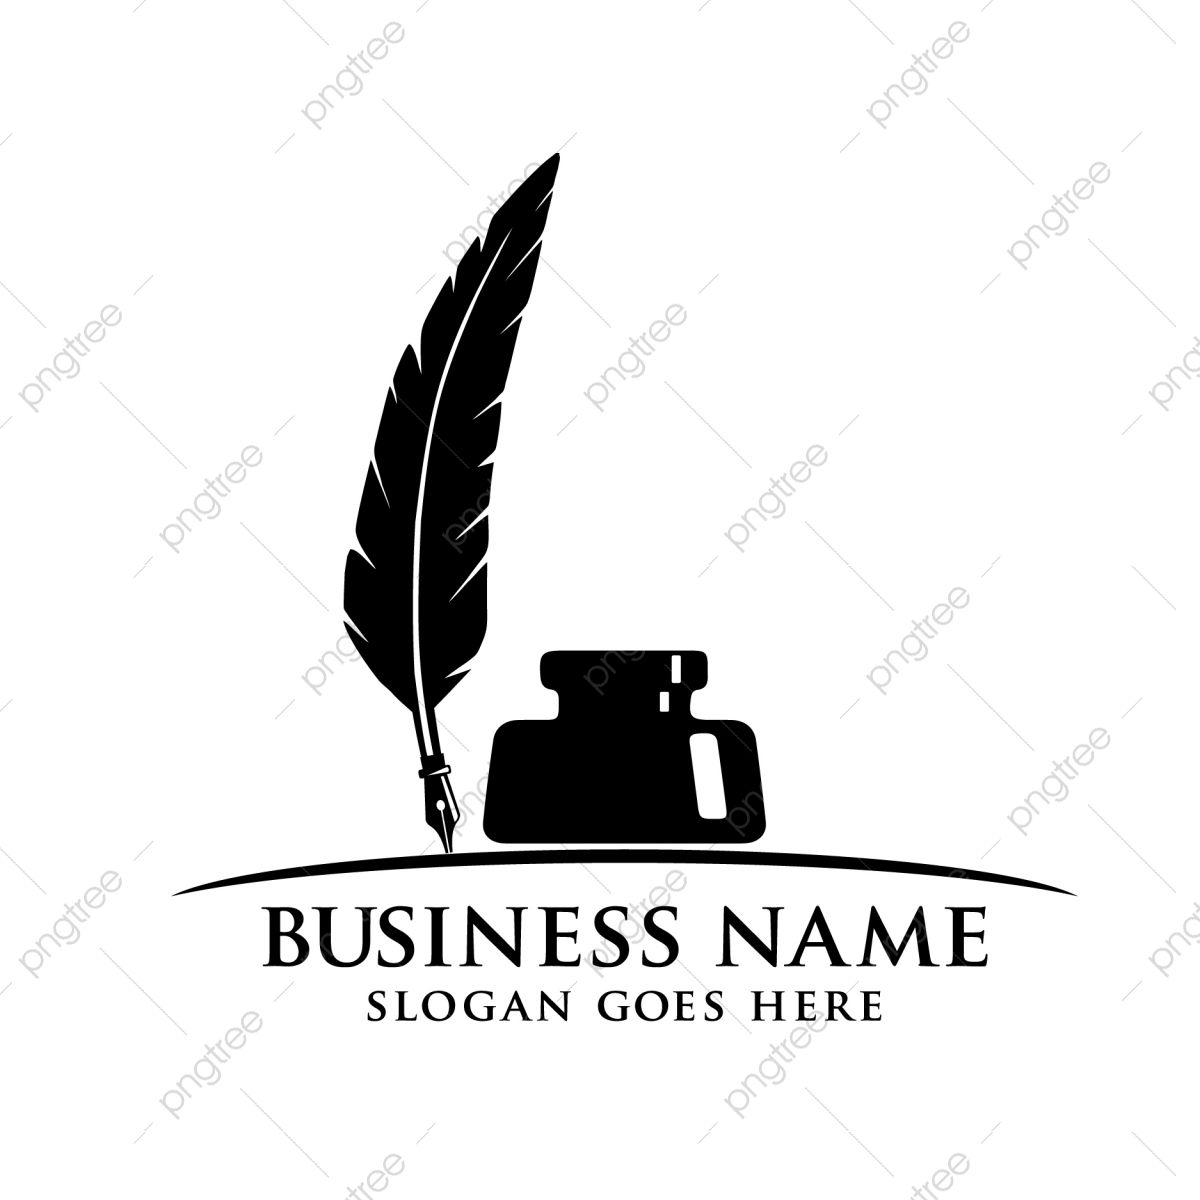 Feather Quill Fountain Pen Beside Ink Bottle Vector Logo Design Feather Icons Logo Icons Bottle Icons Png And Vector With Transparent Background For Free Dow In 2021 Vector Logo Design Bottle